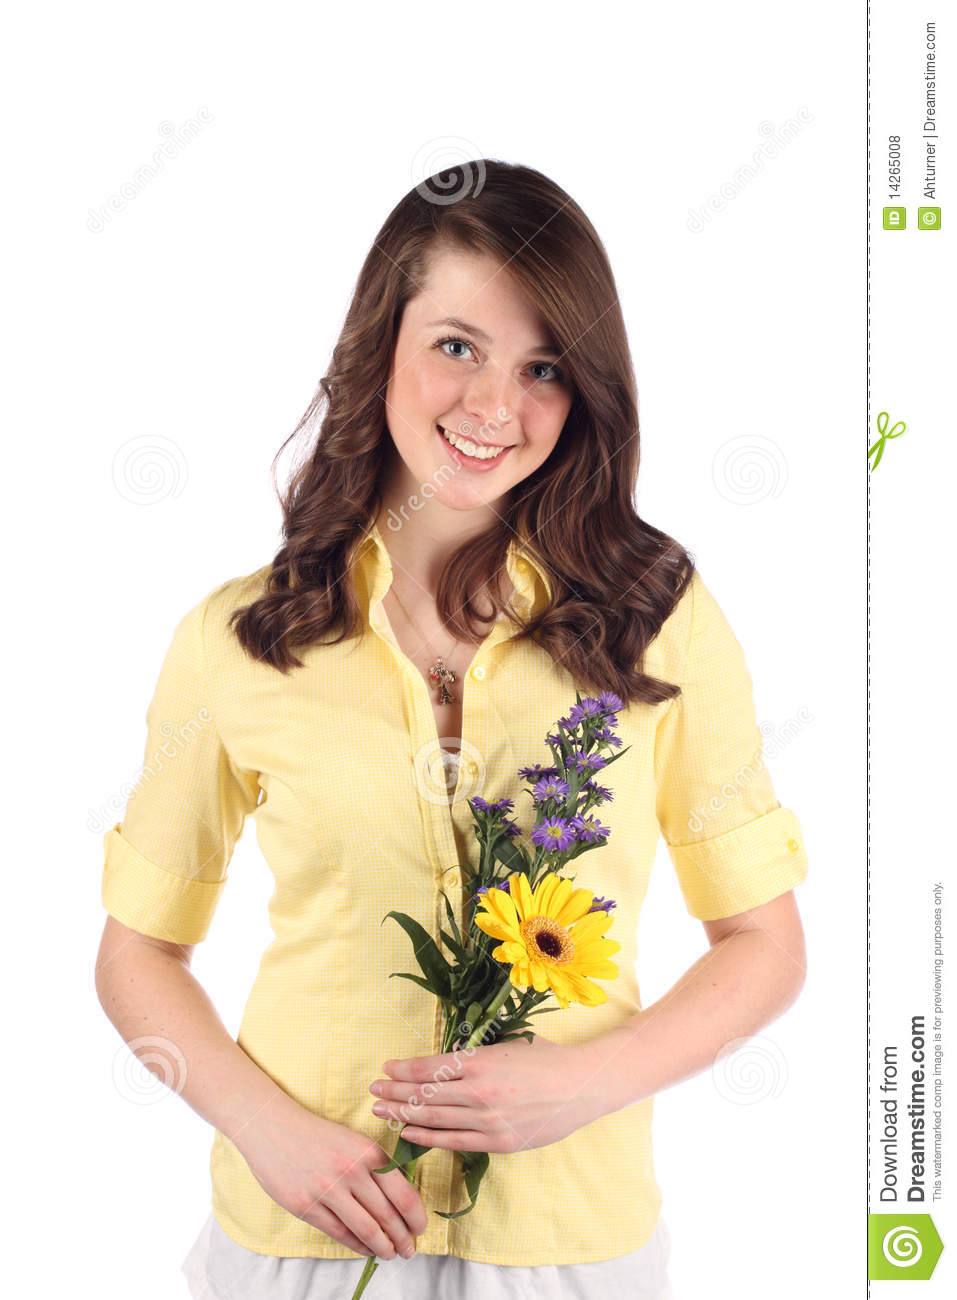 Pretty teen with flowers royalty free stock photos image 14265008 - Image of teen ...